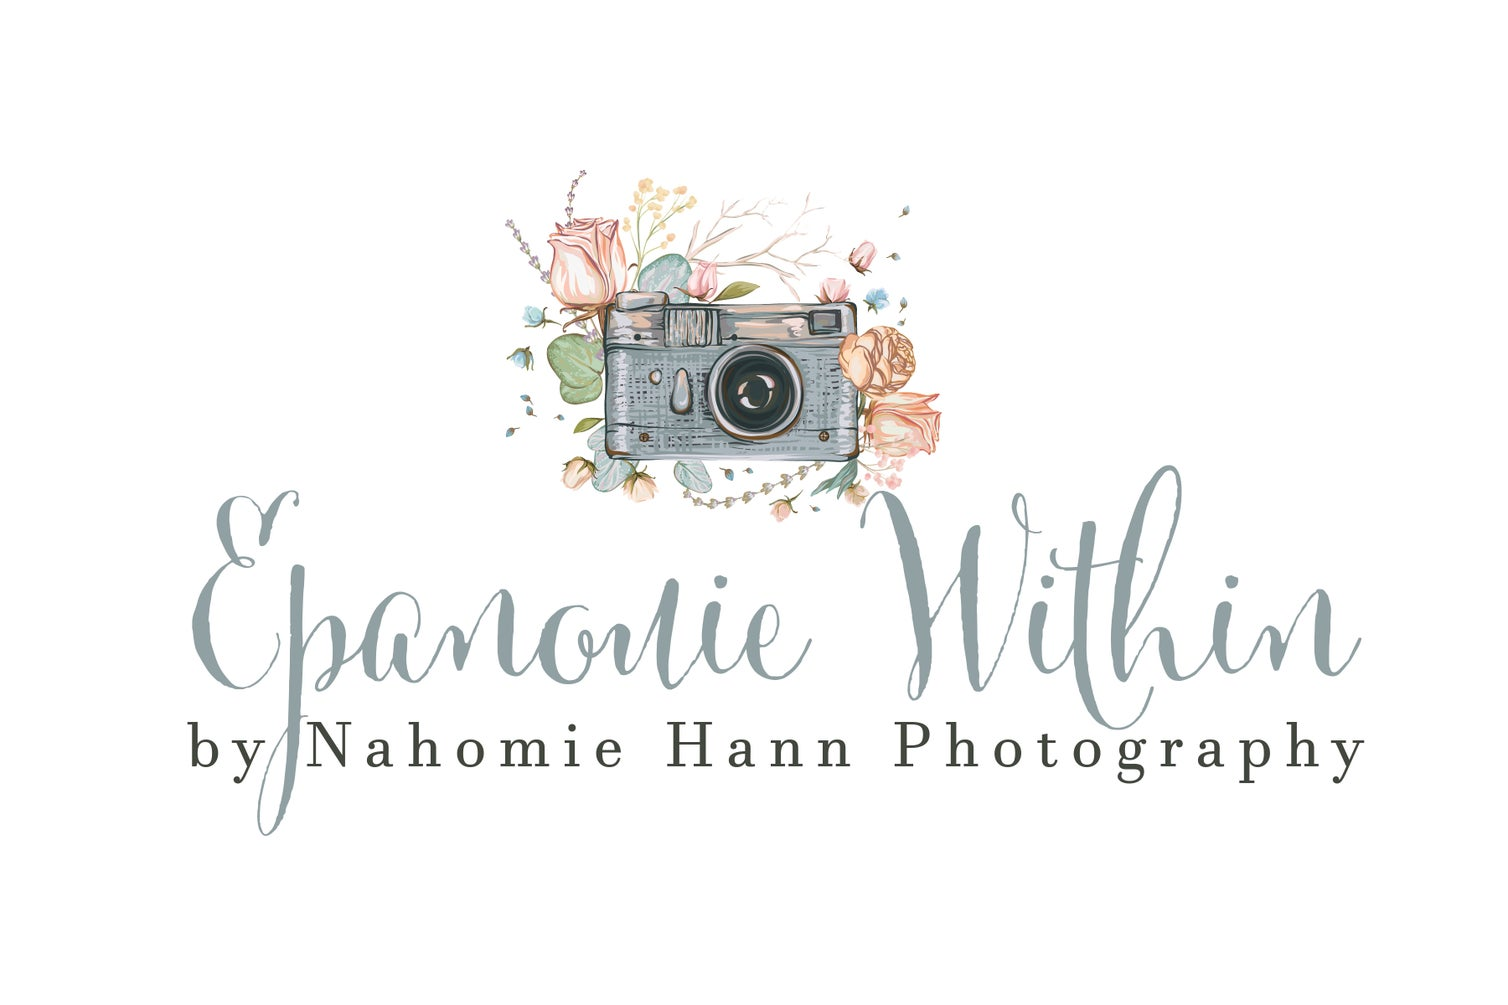 Epanouie Within by Nahomie Hann Photography